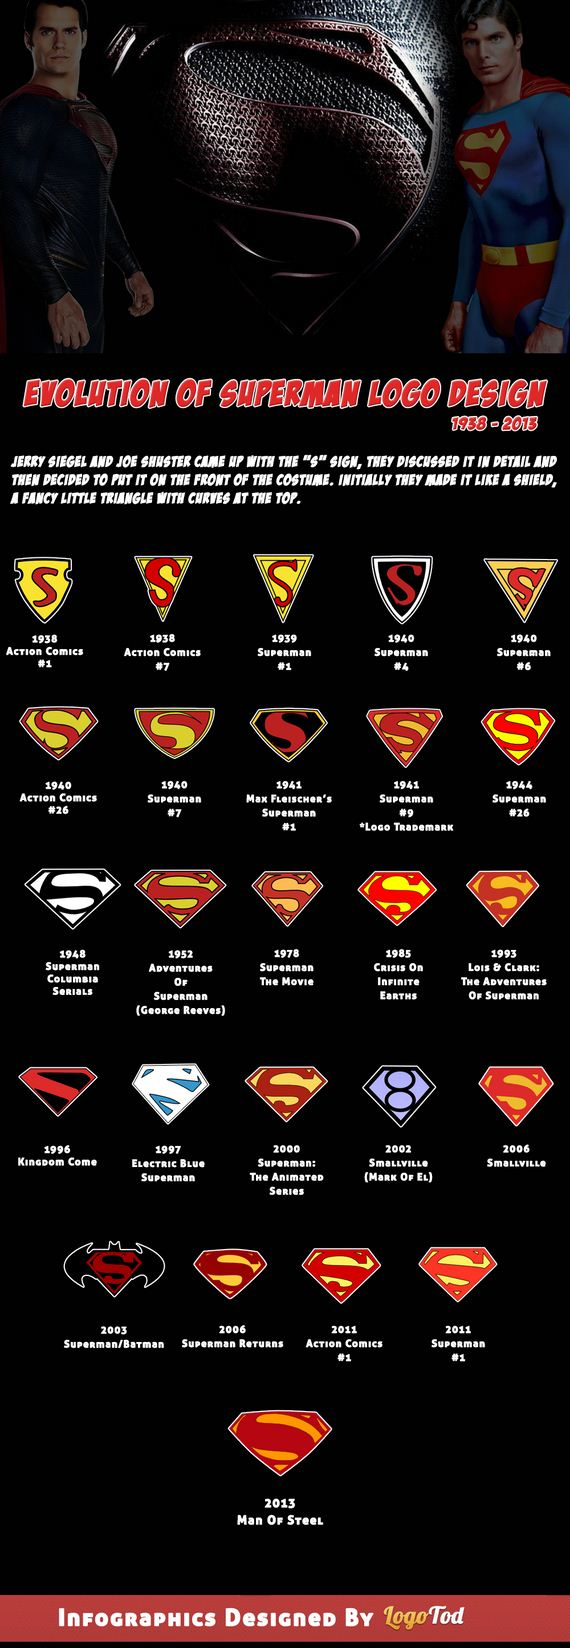 02-Infographic-on-SuperMan-Logo